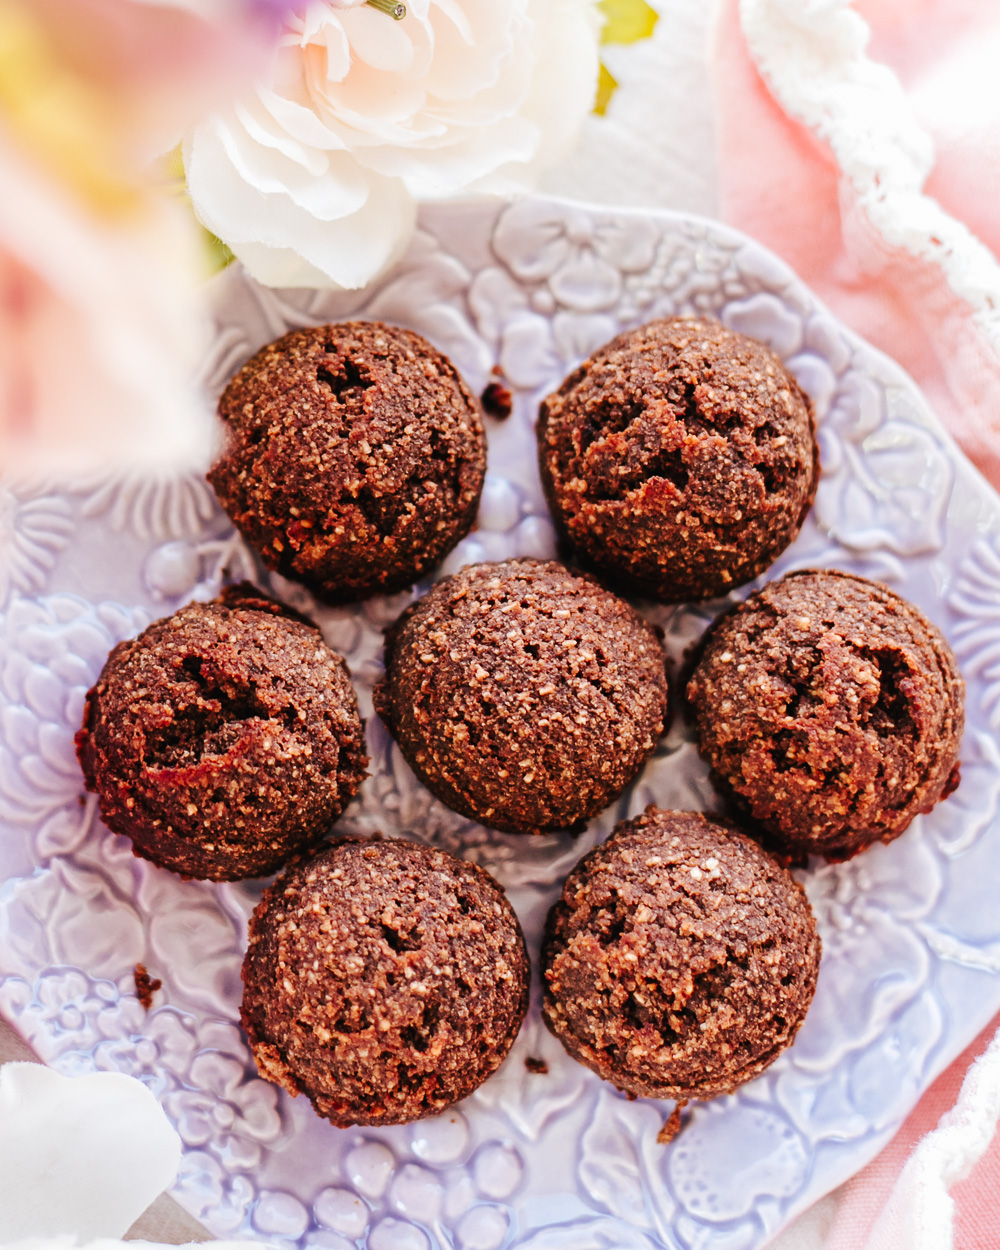 The Healthy Sugar-Free Chocolate Cookies are all-natural, high in protein (no protein powders!), low-fat, nutritious, super-easy & quick to make, but sweet and so satisfying! #healthycookies #healthychocolate #healthychocolatecookies #healthydessert #healthyeasy #lowcaloriecookies #noaddedsugar #sugarfreecookies